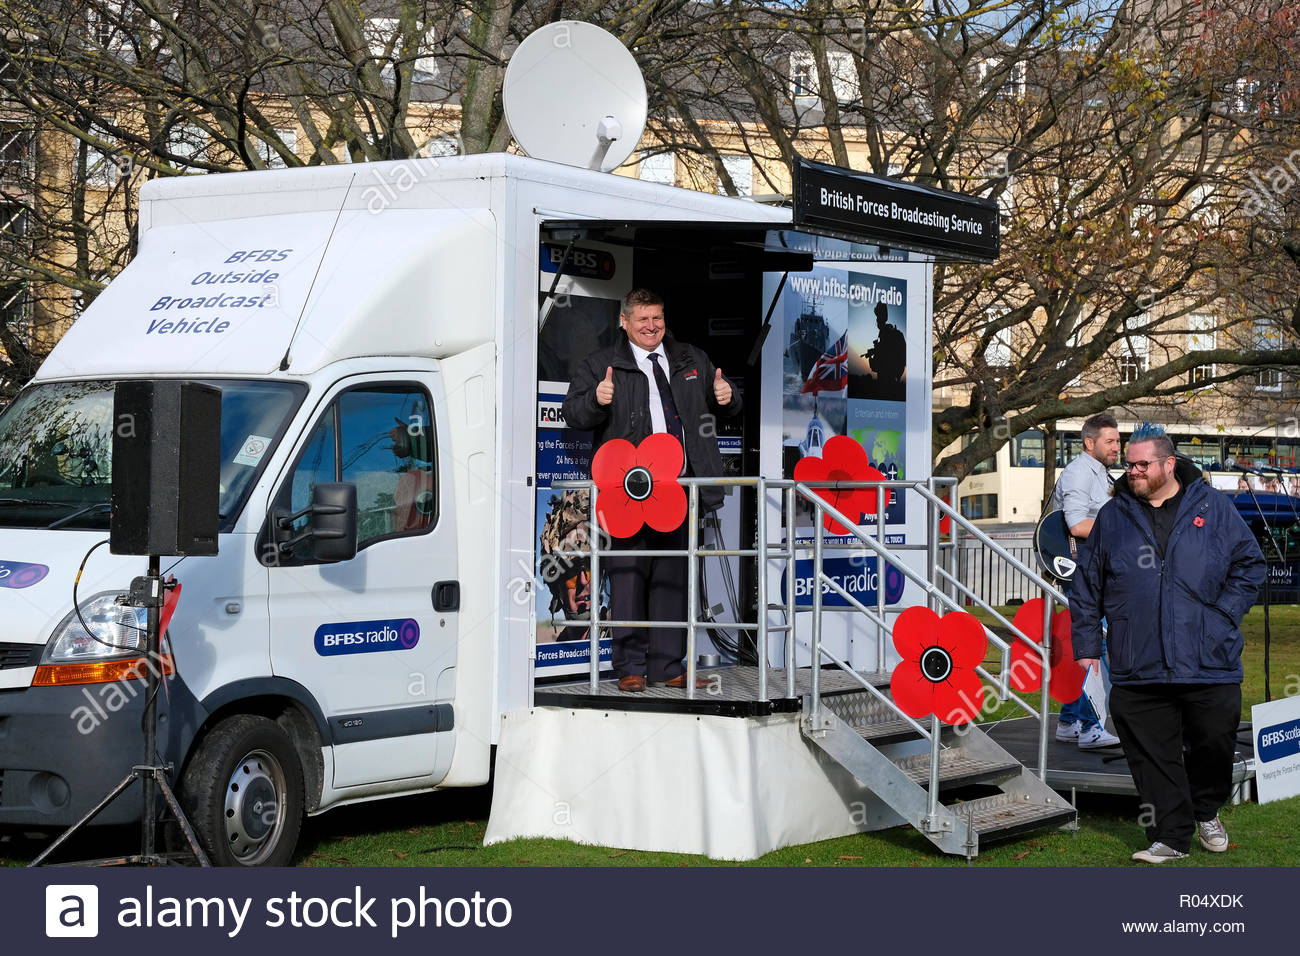 Edinburgh, United Kingdom. 1st November, 2018.  Edinburgh Poppy Day hosted by PoppyScotland in St Andrew Square. Gordon Michie, Head of Fundraising at PoppyScotland giving a thumbs up sign. Credit: Craig Brown/Alamy Live News. - Stock Image